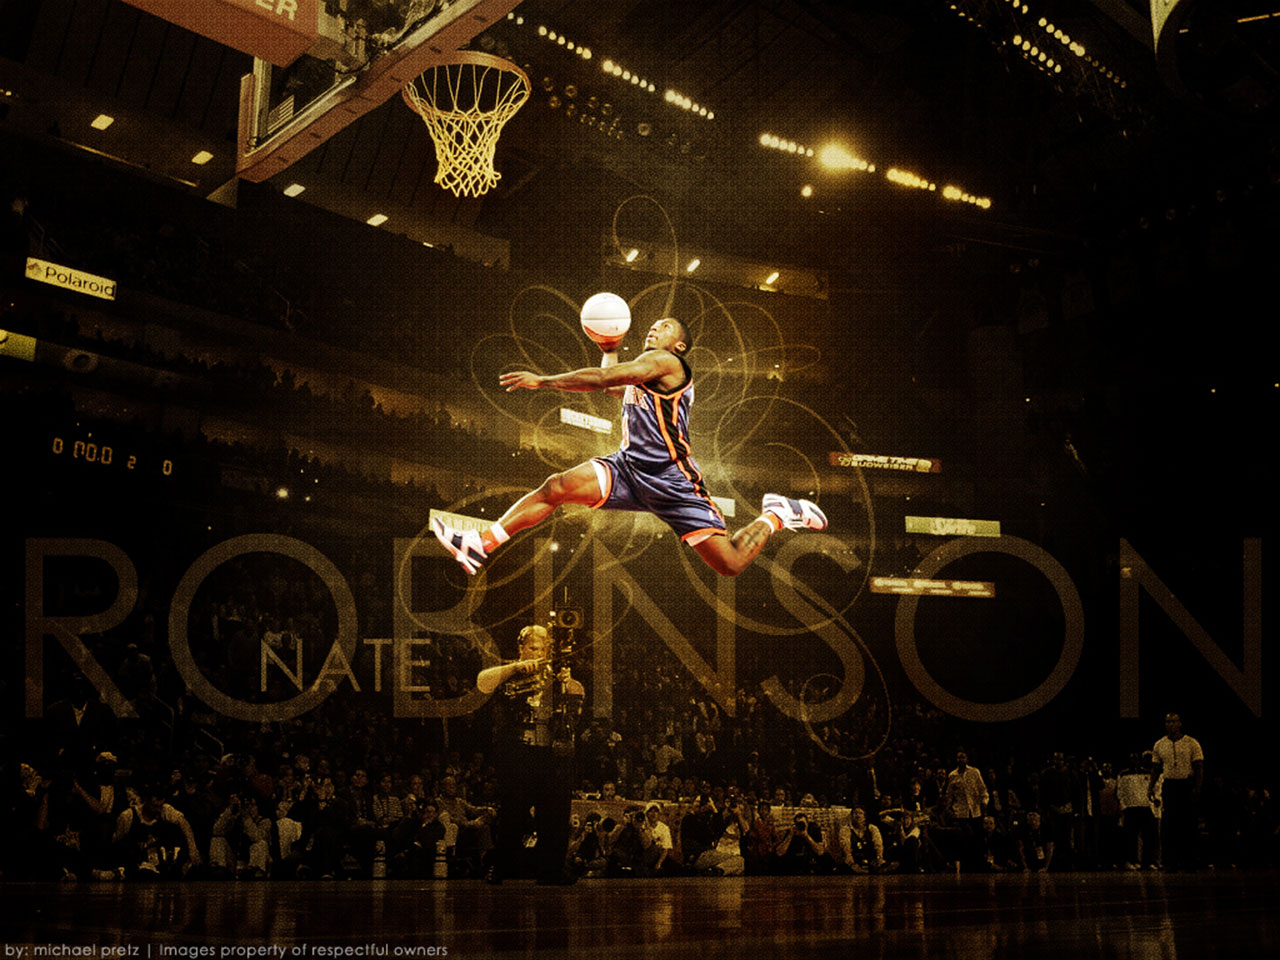 Nate Robinson 1280x960 Dunk Wallpaper